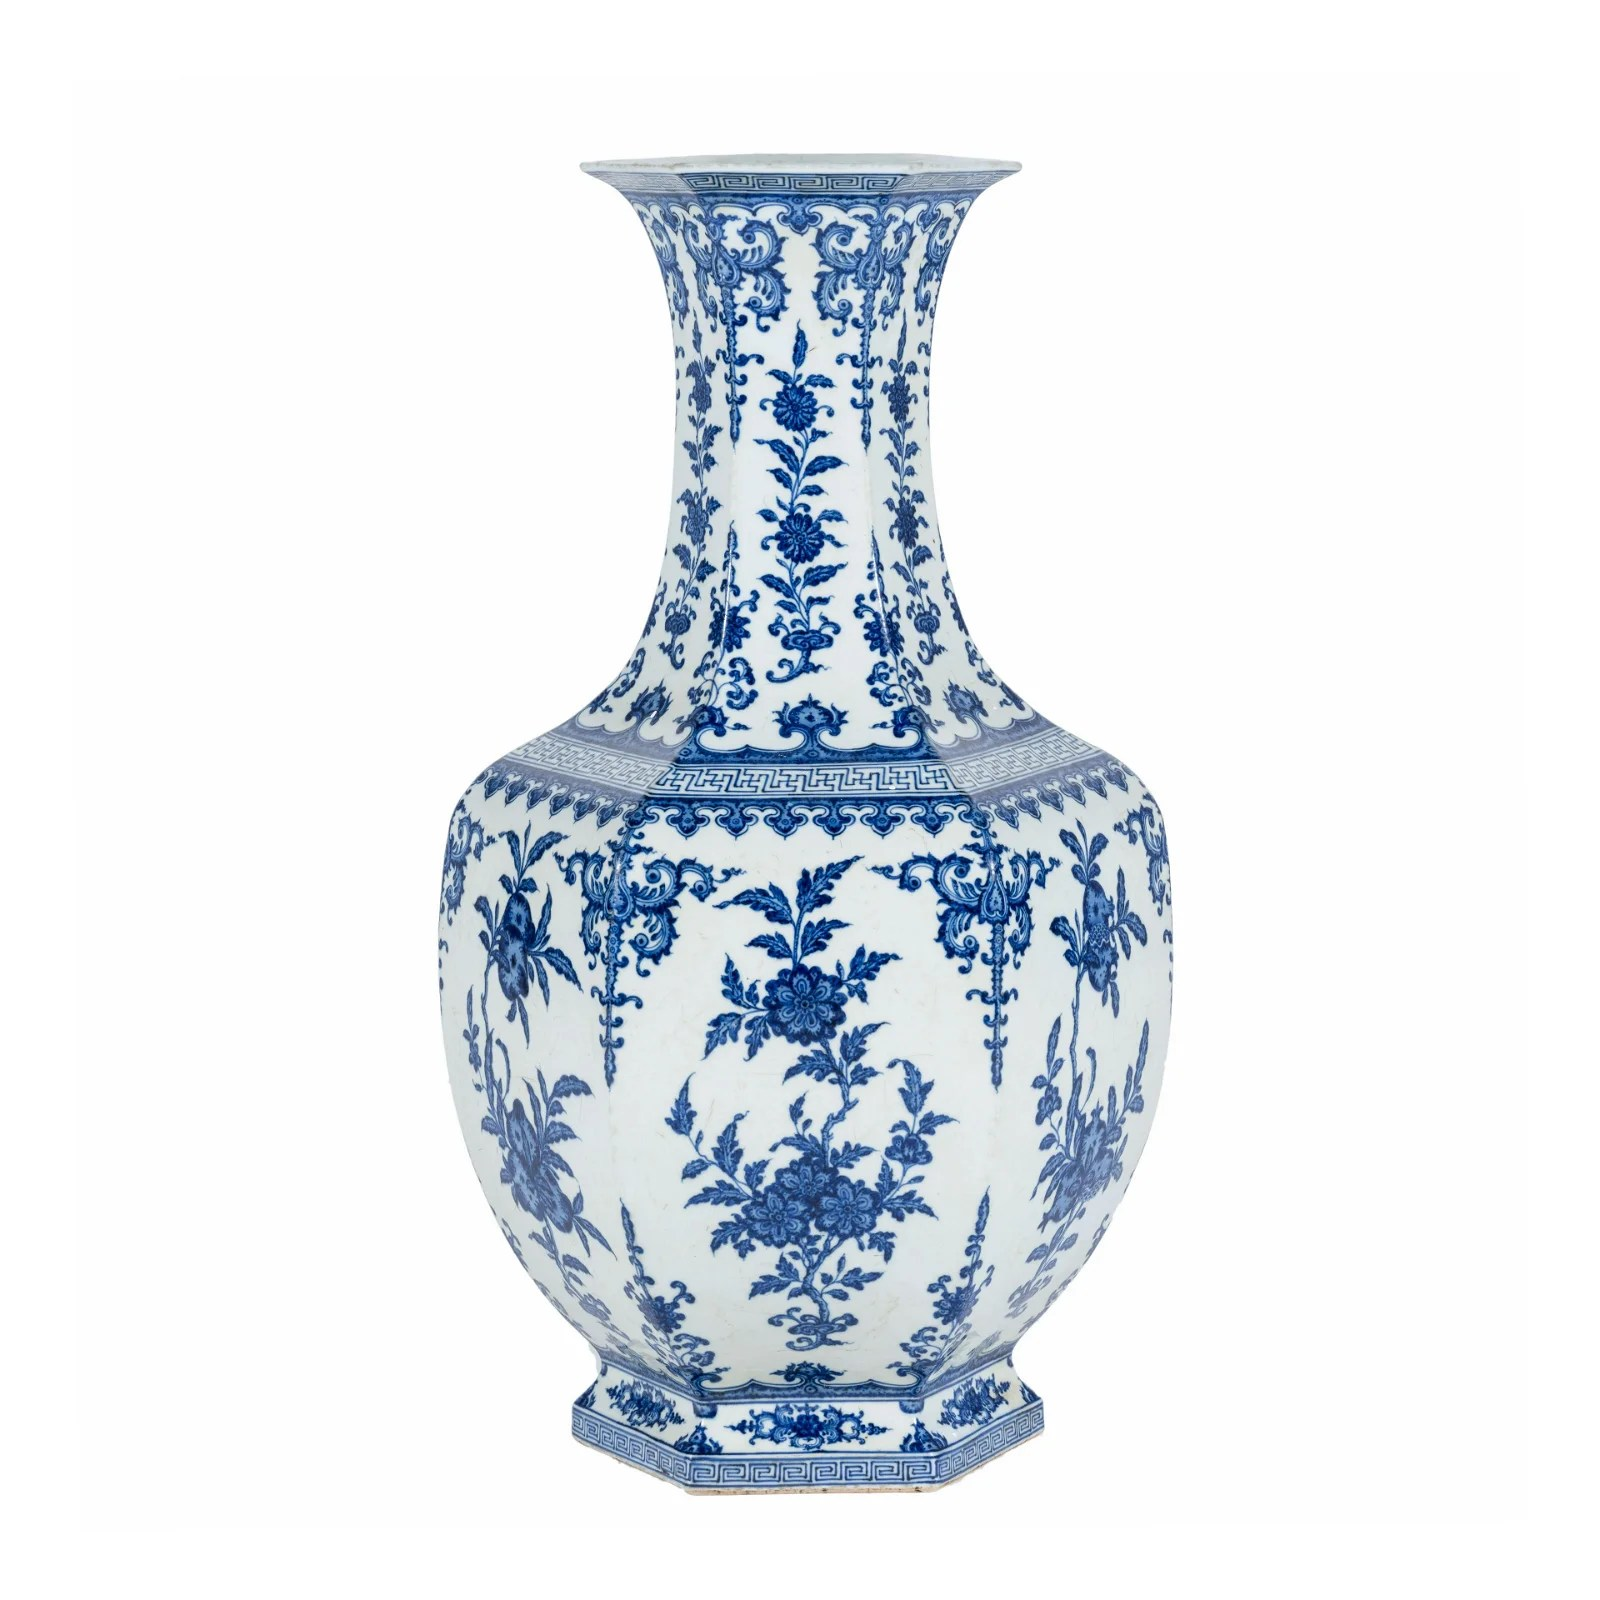 QIANLONG BLUE &WHITE HEXAGONAL VASE